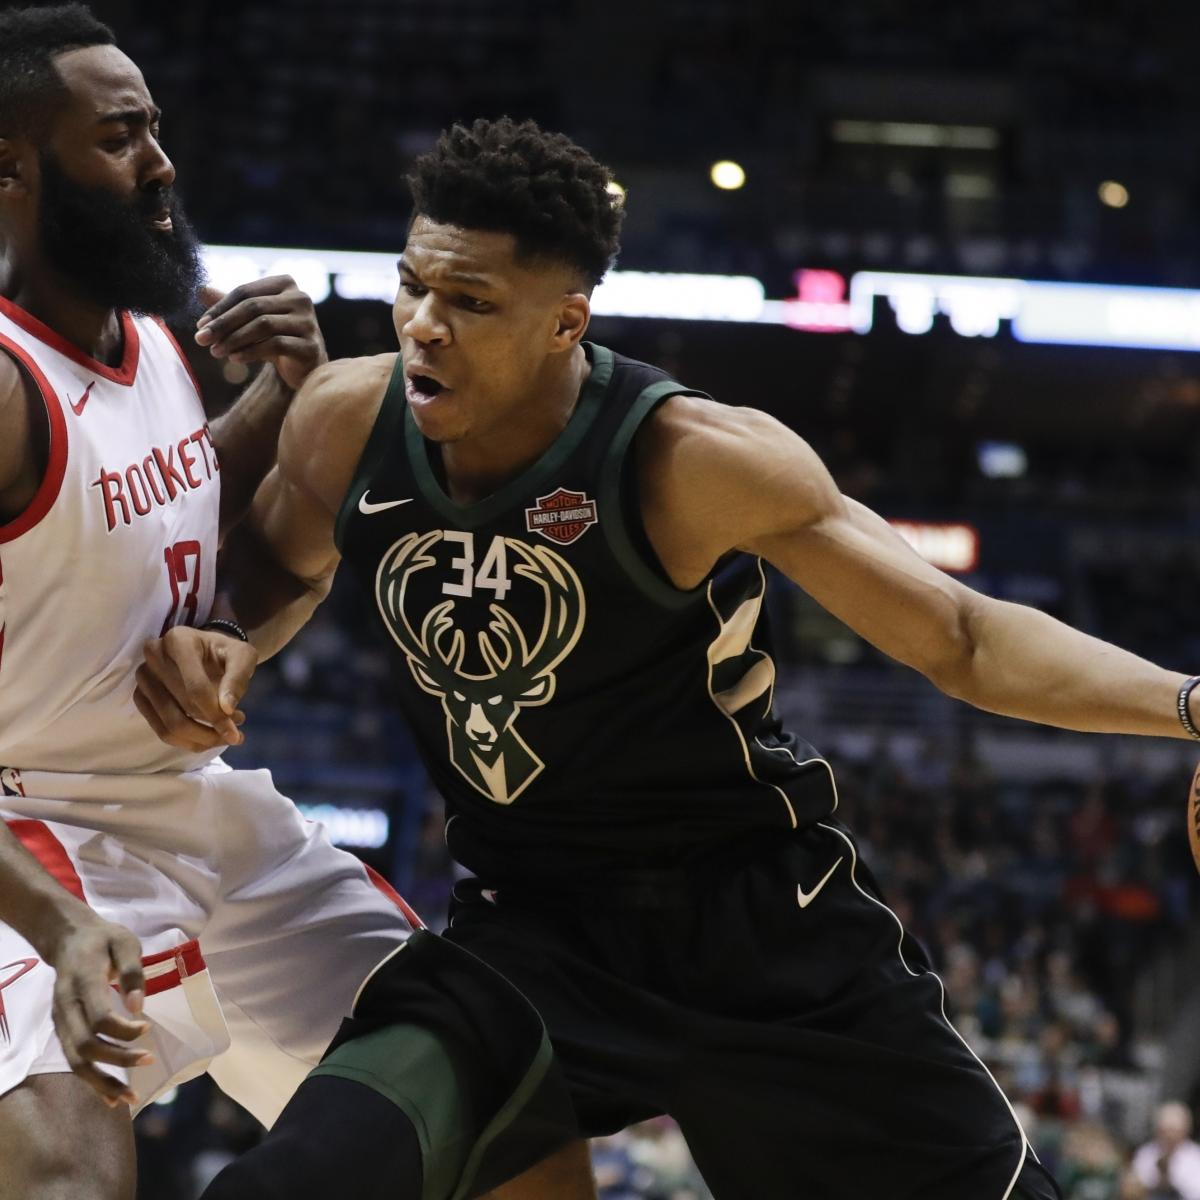 Nba Rookie Award Predictions For 2018 19 Season: James Harden, Giannis Antetokounmpo, Paul George Named